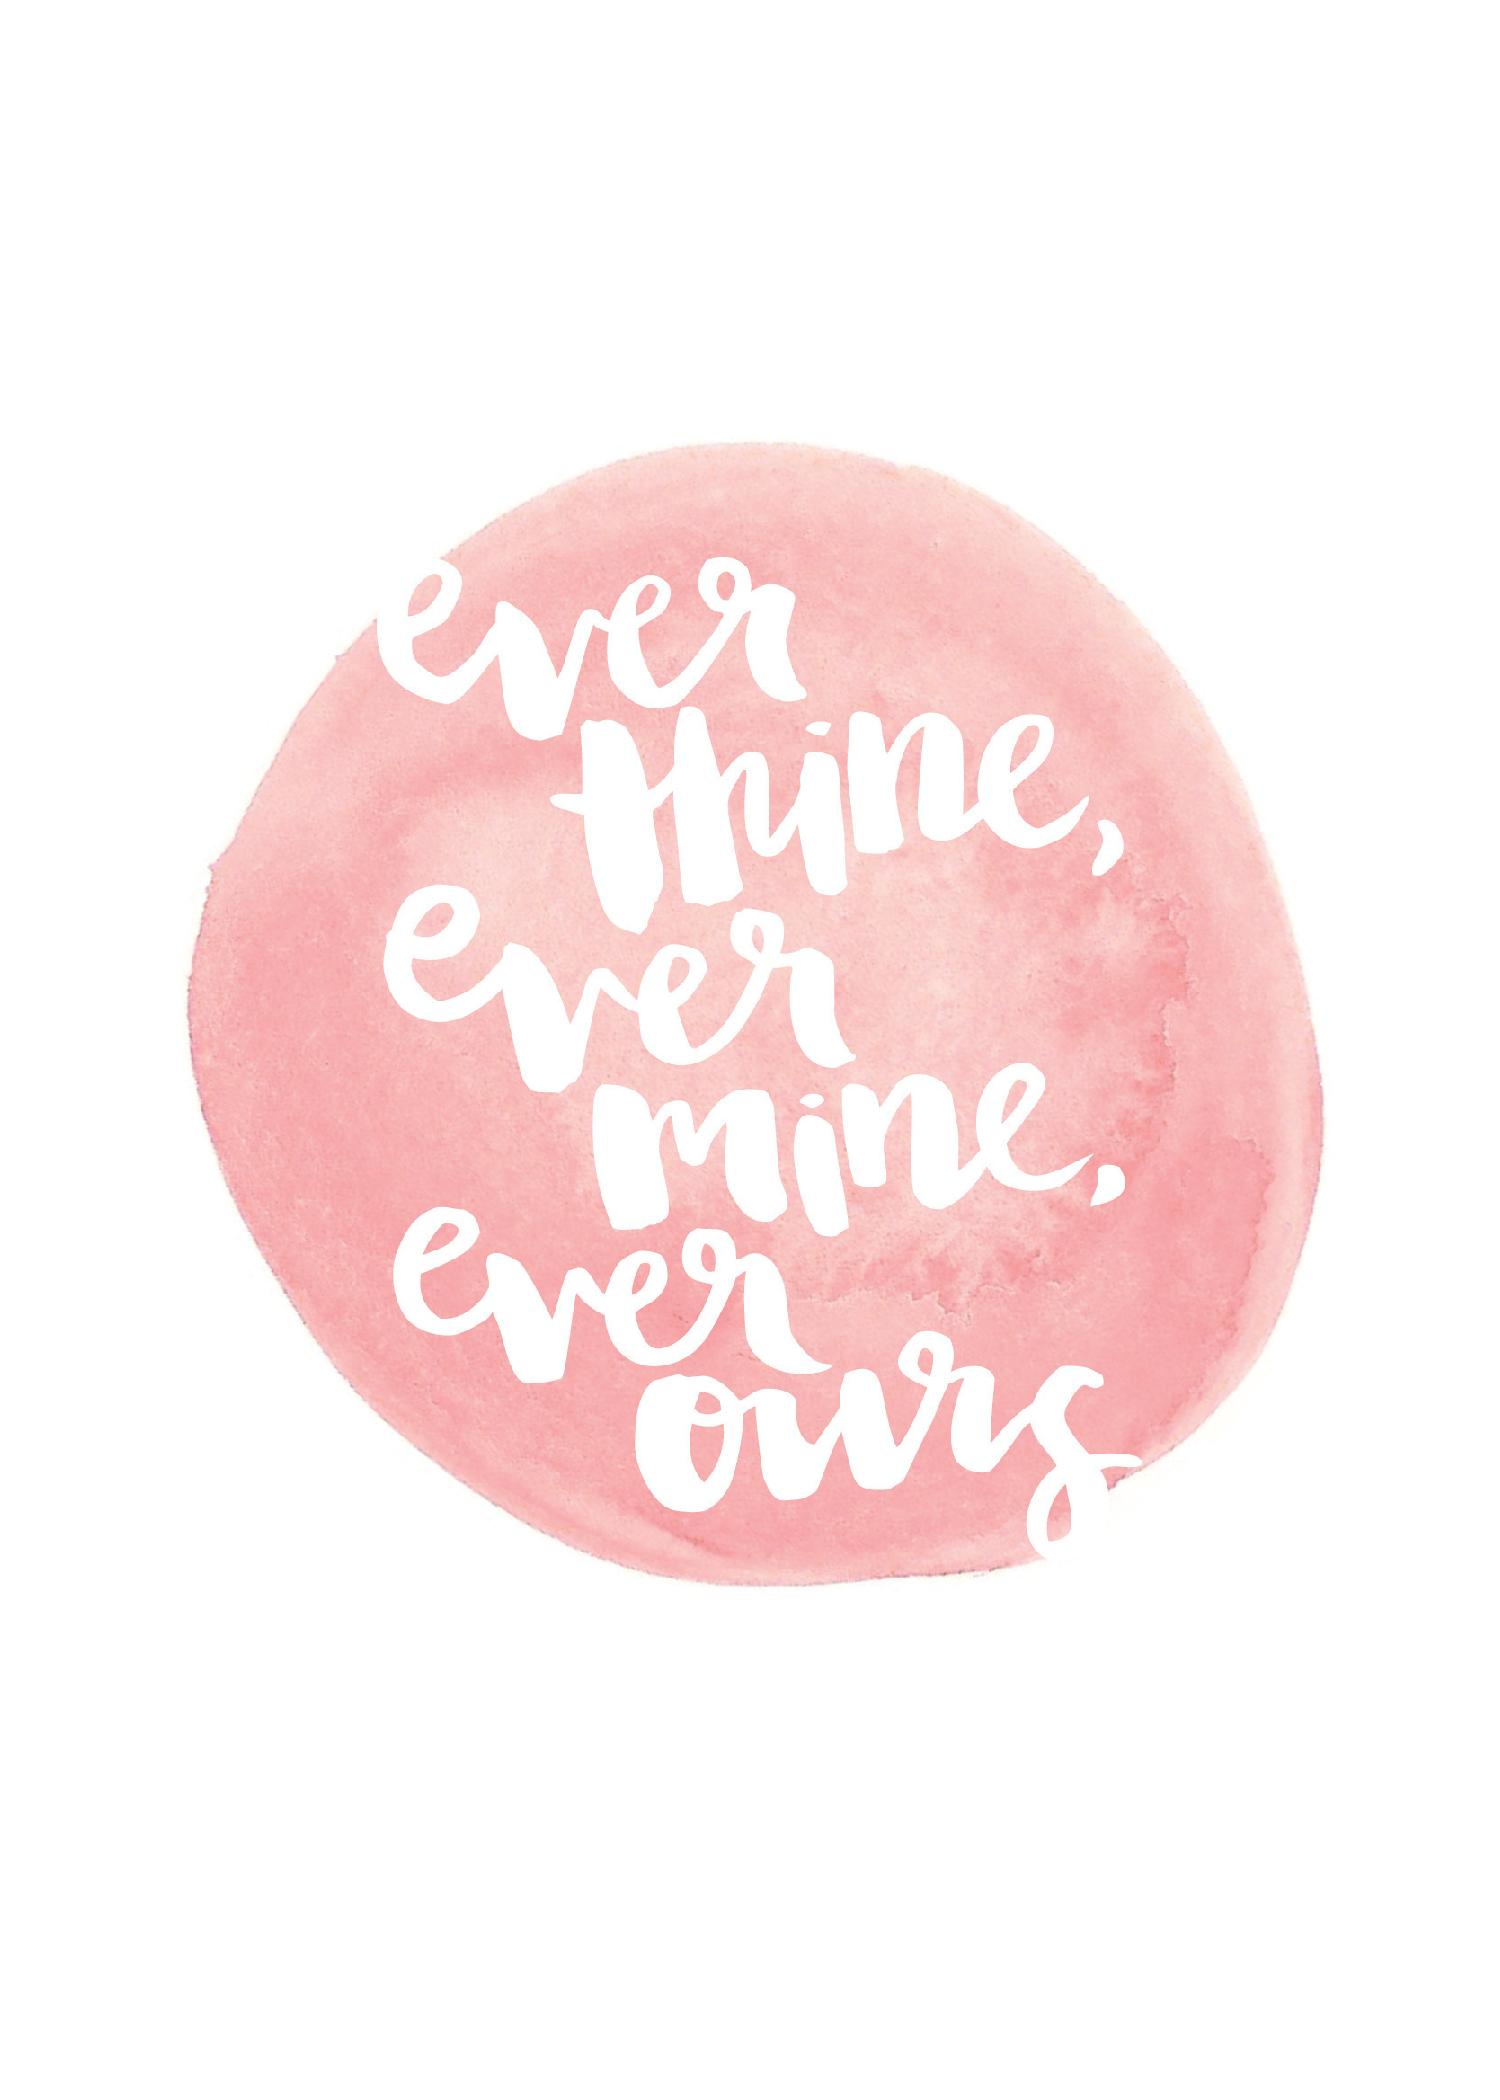 Image: Ever thine, ever mine, ever ours by JustGreet